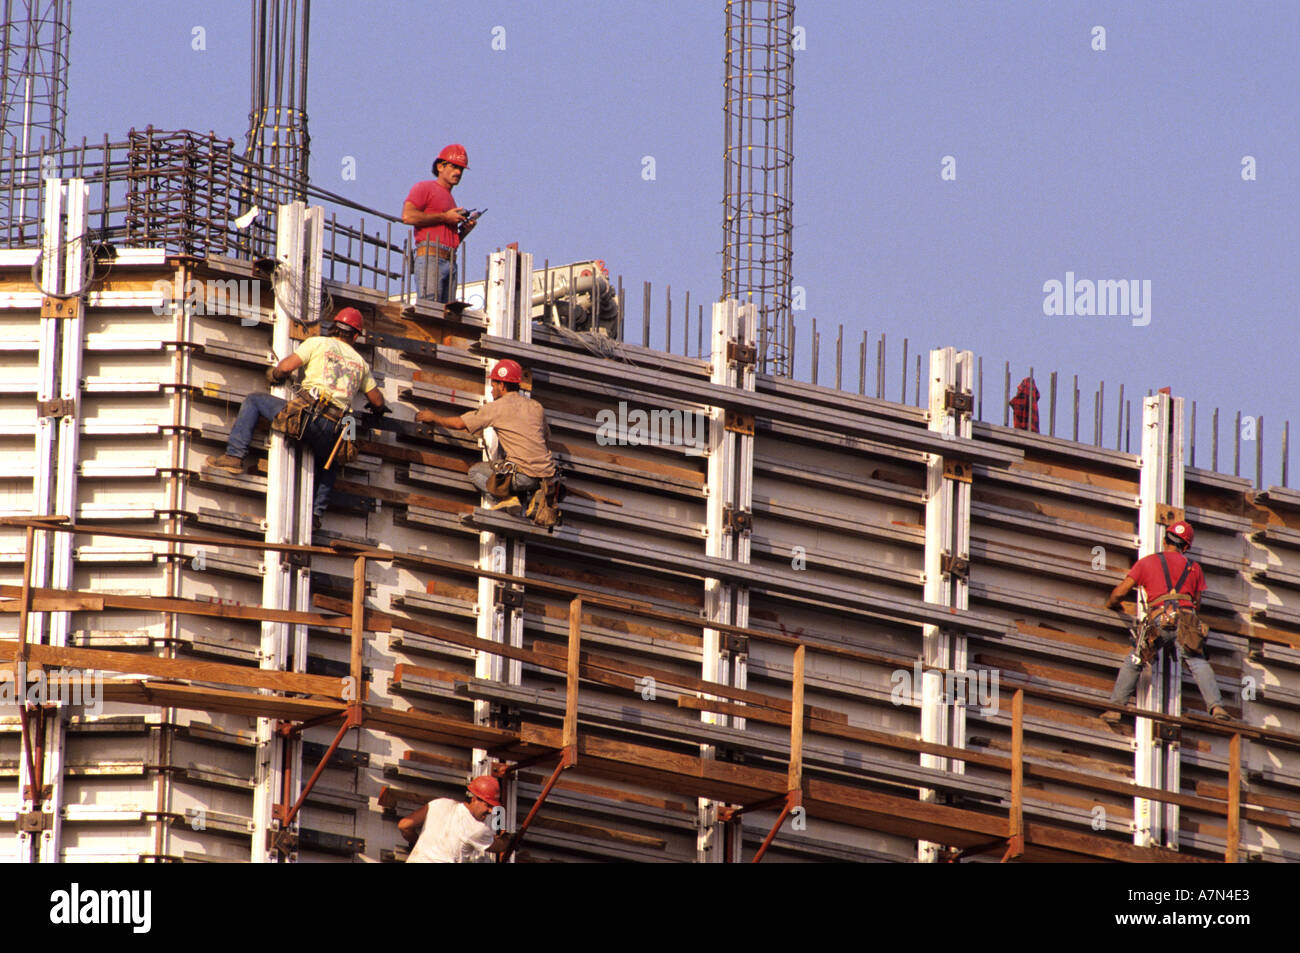 e769670c683c3 Construction workers work with rebar on a new concrete building ...